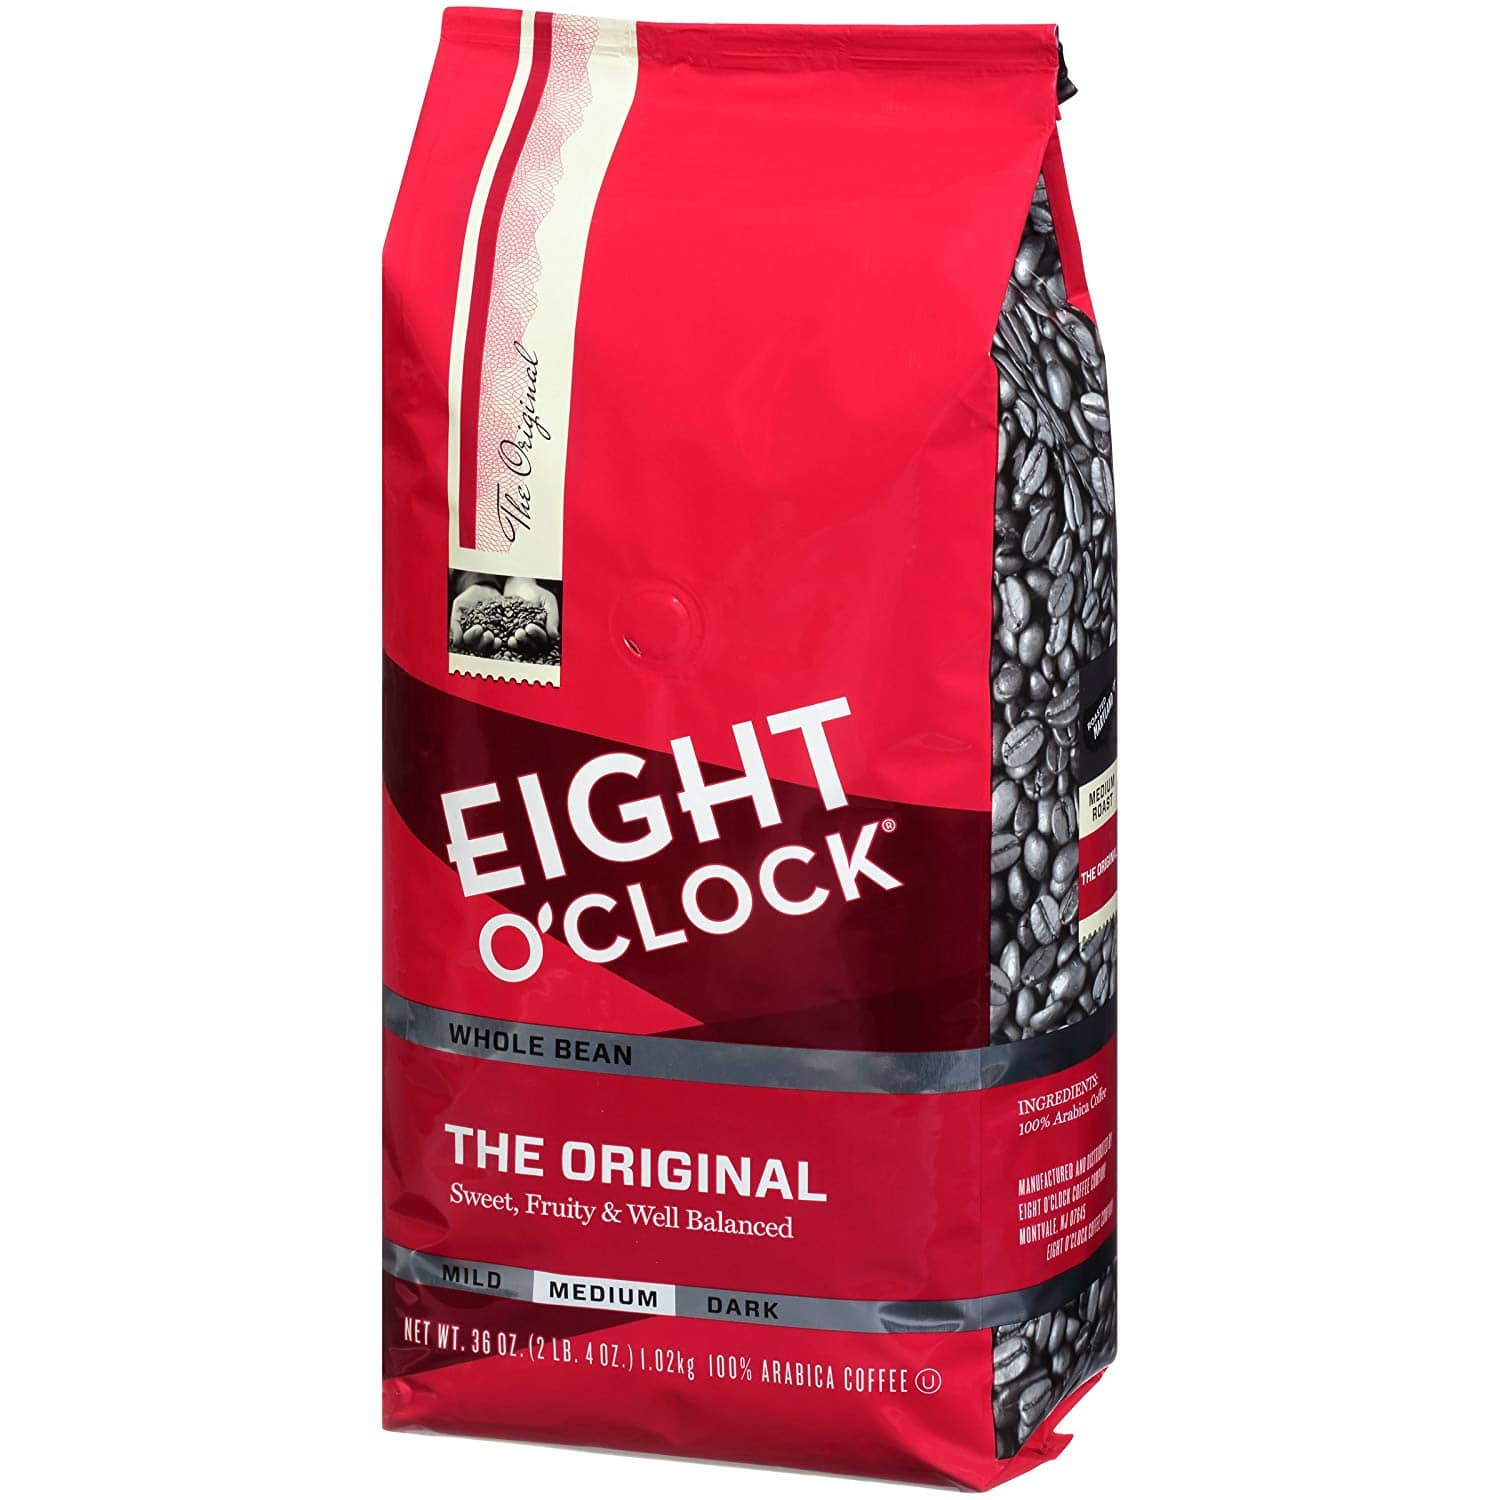 36oz Eight O'Clock Whole Bean Coffee (The Original) $9.42 or Less + Free Shipping Amazon.com